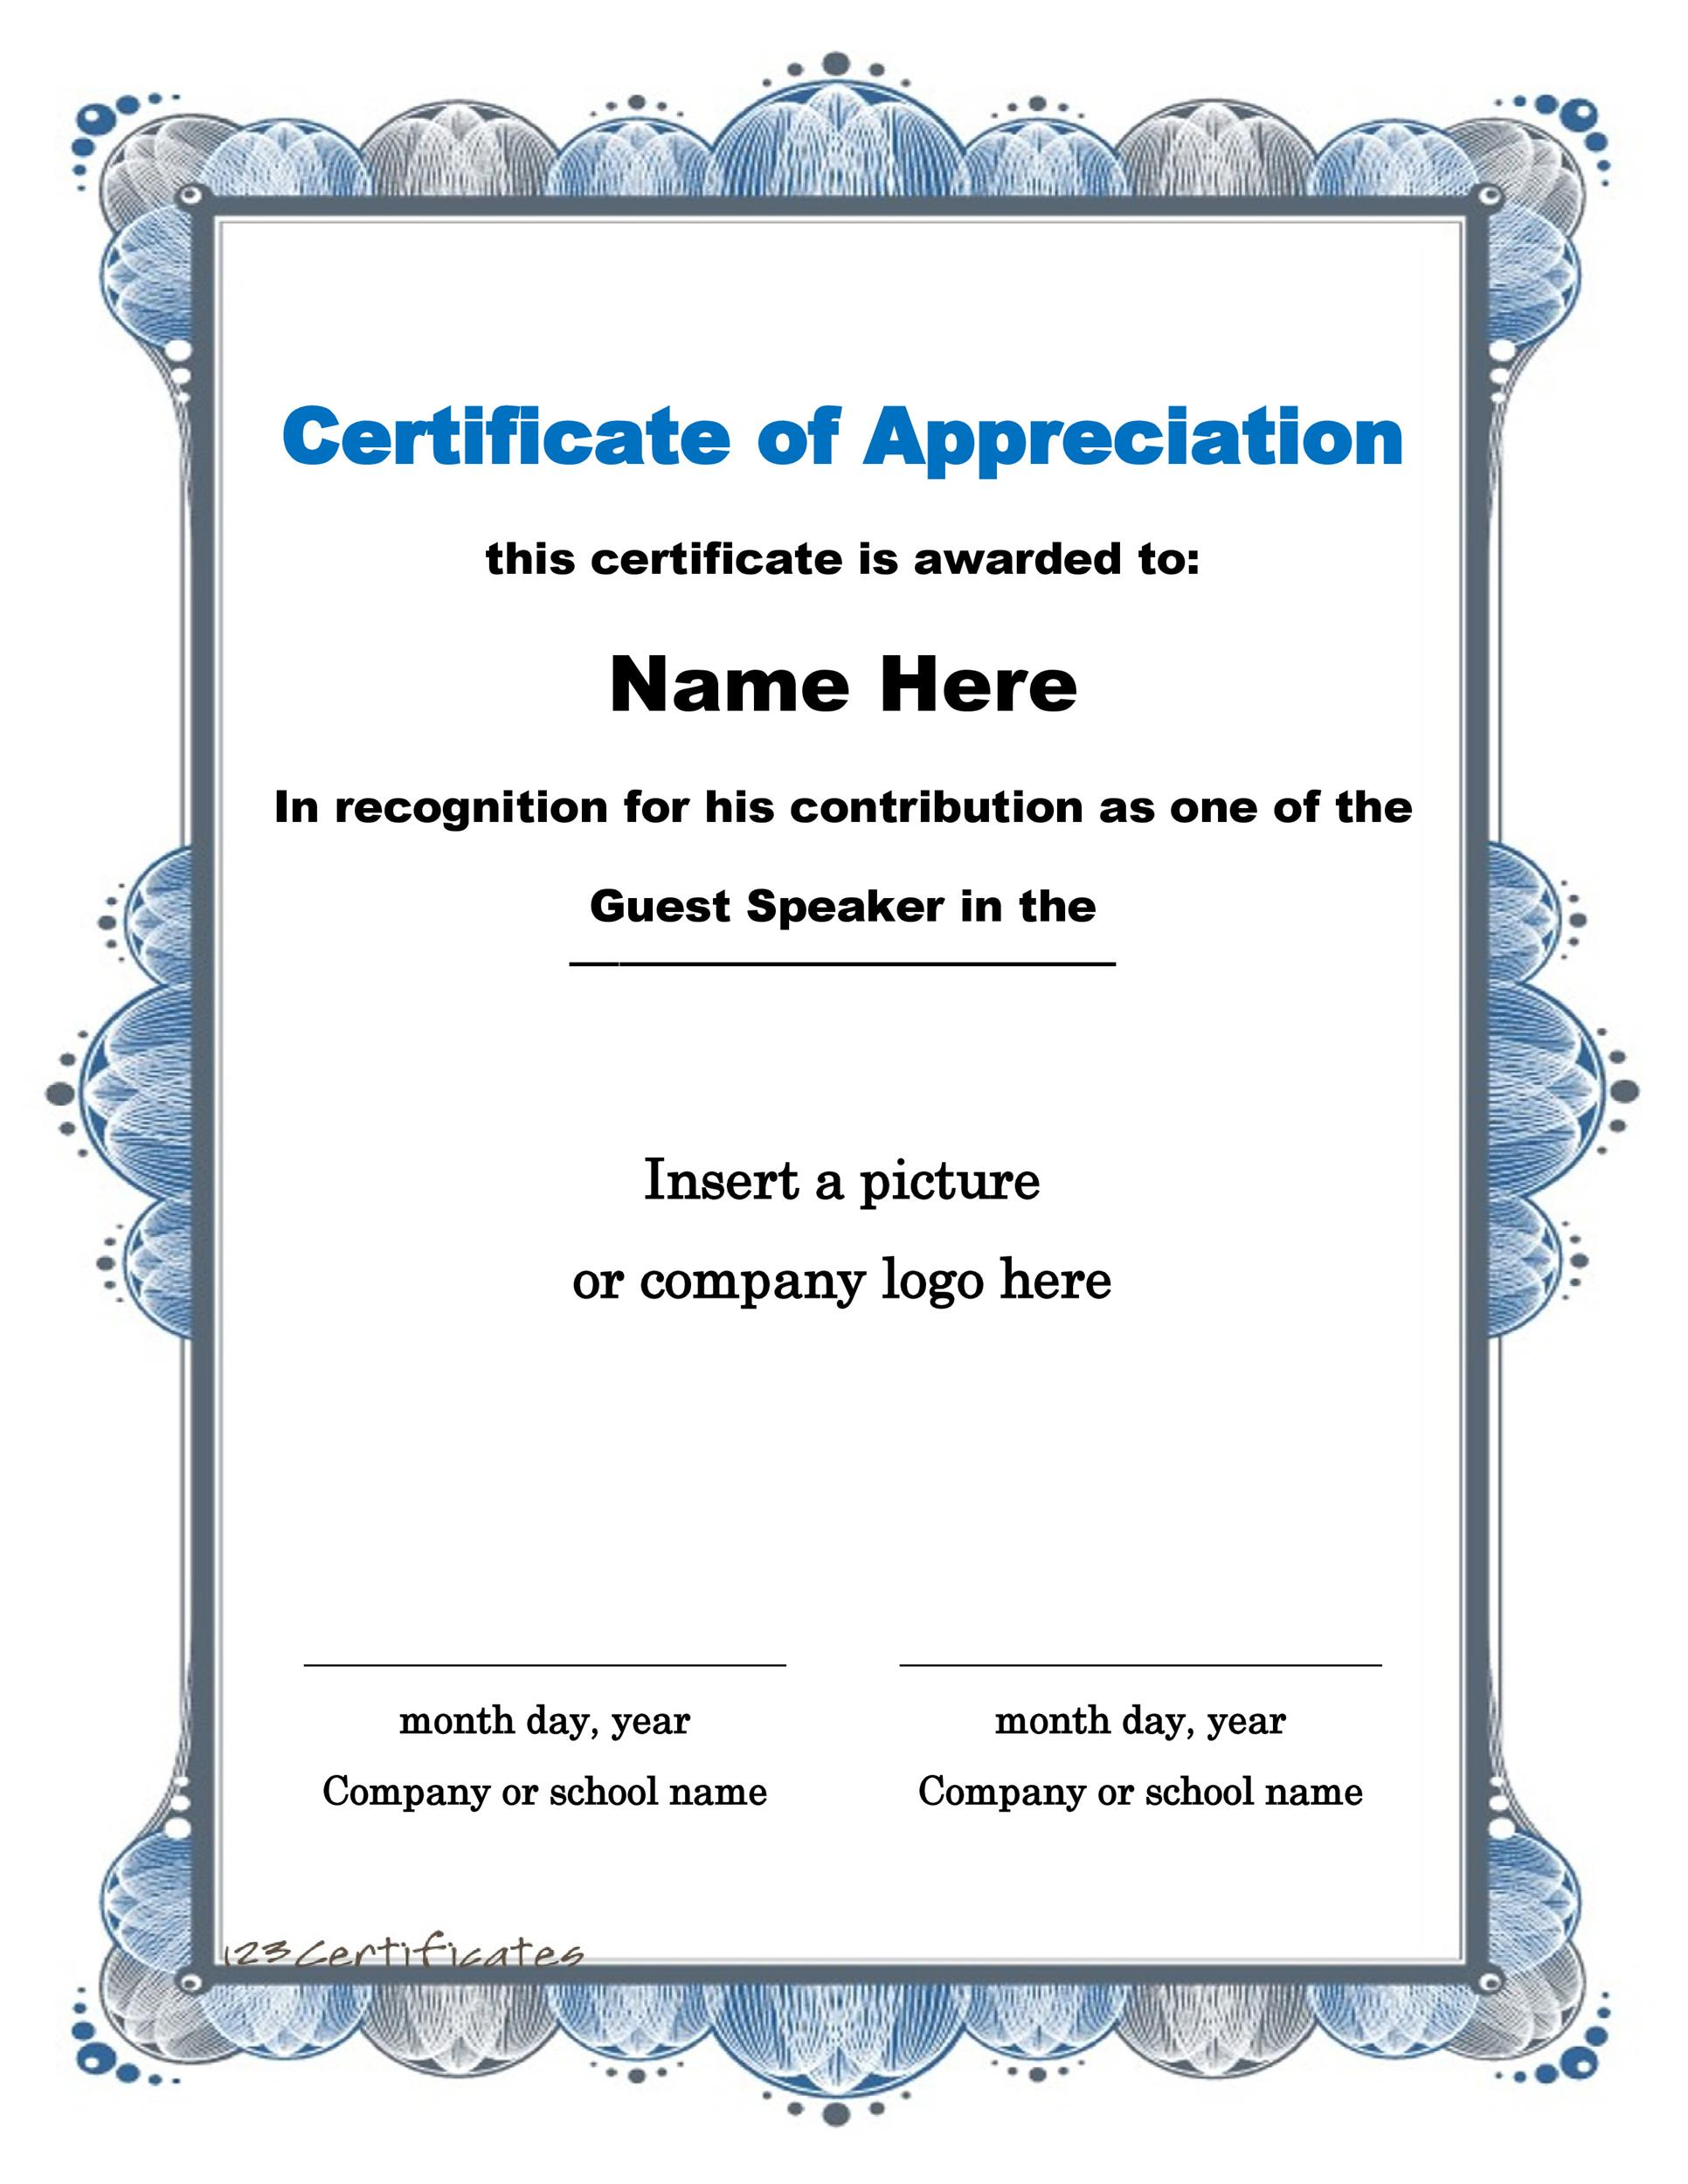 30 Free Certificate of Appreciation Templates and Letters – Printable Certificate of Recognition